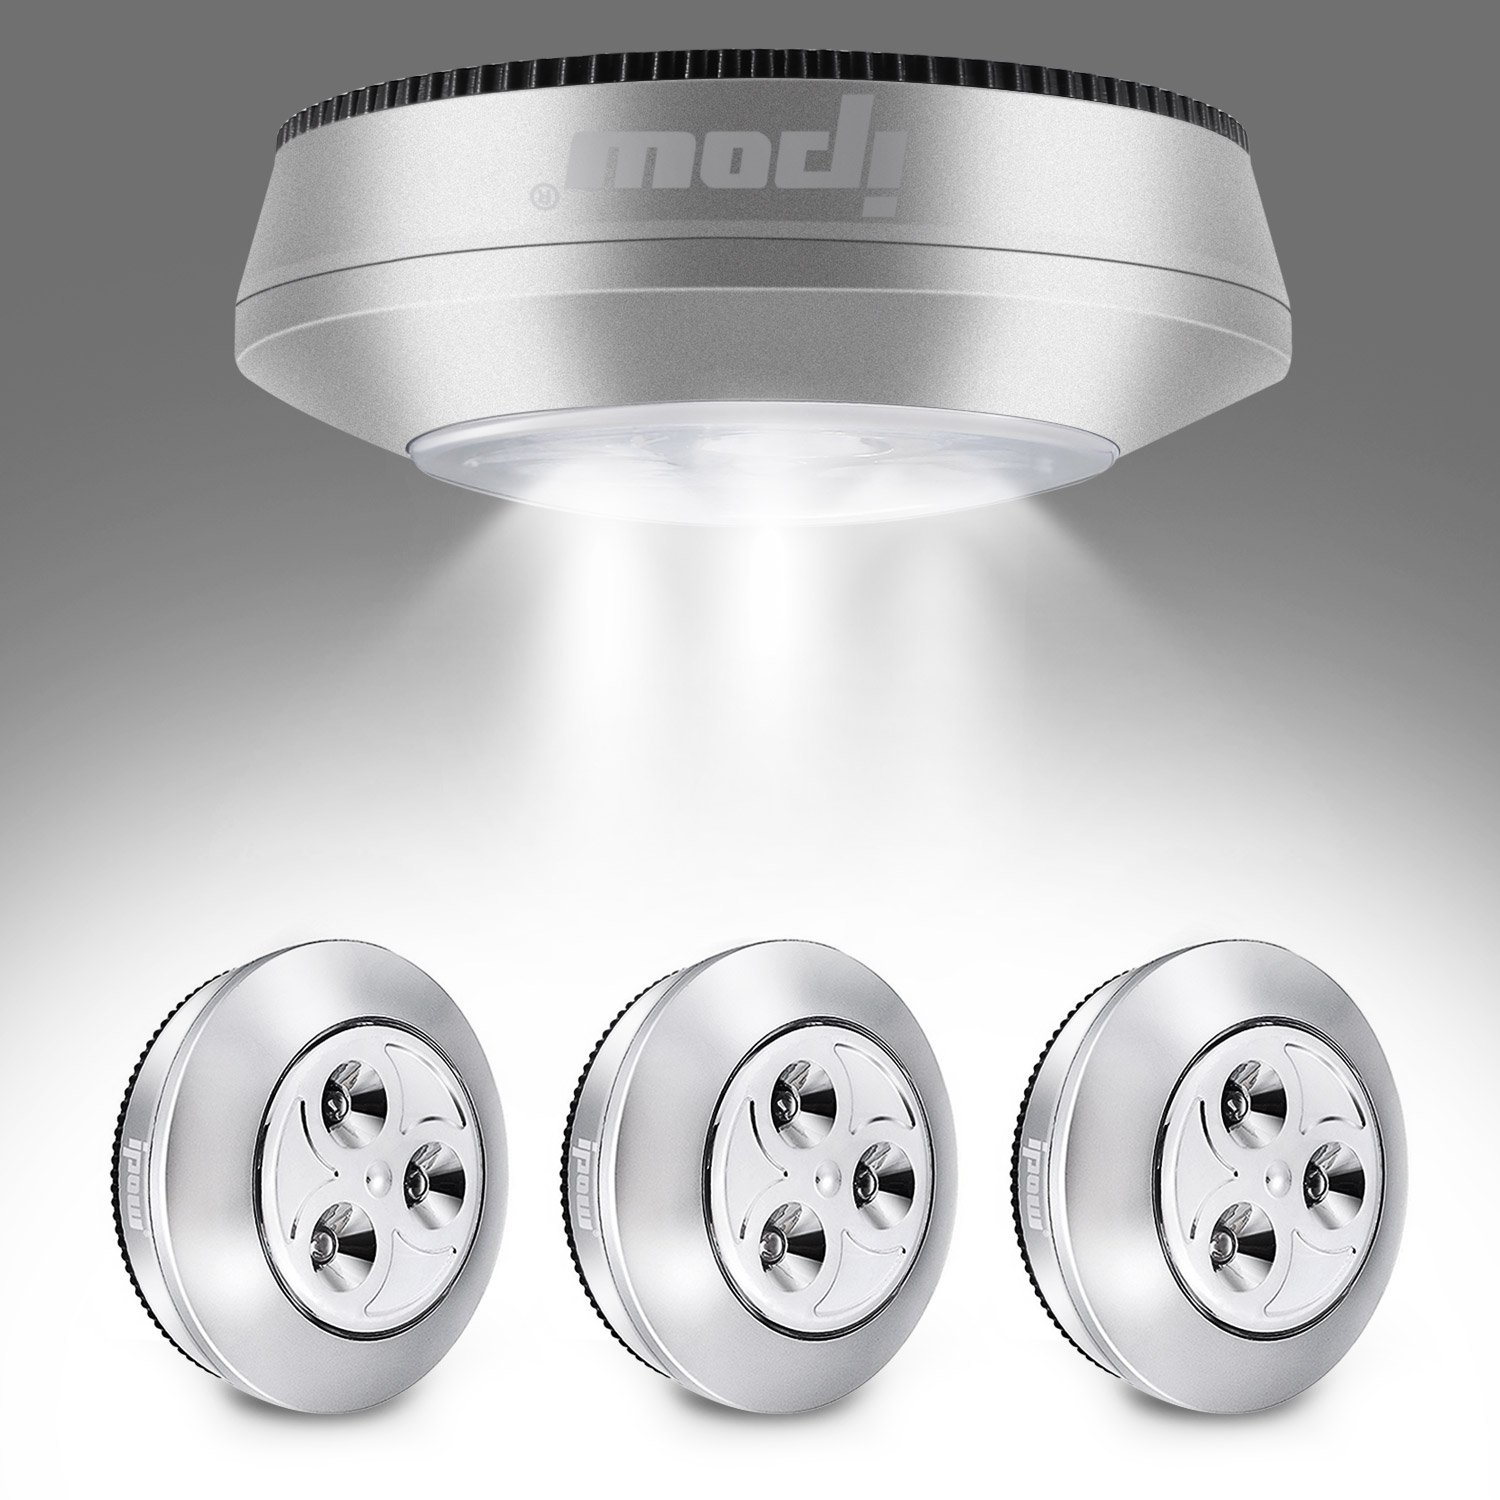 IPOW Tap Lights Stylish UFO Shape | Bright White Daylight LED Battery-powered Night Lights Stick-on Push Lamp for Closets,Wardrobe,Cabinets,Counters,Utility Rooms,Cordless,4 Pack